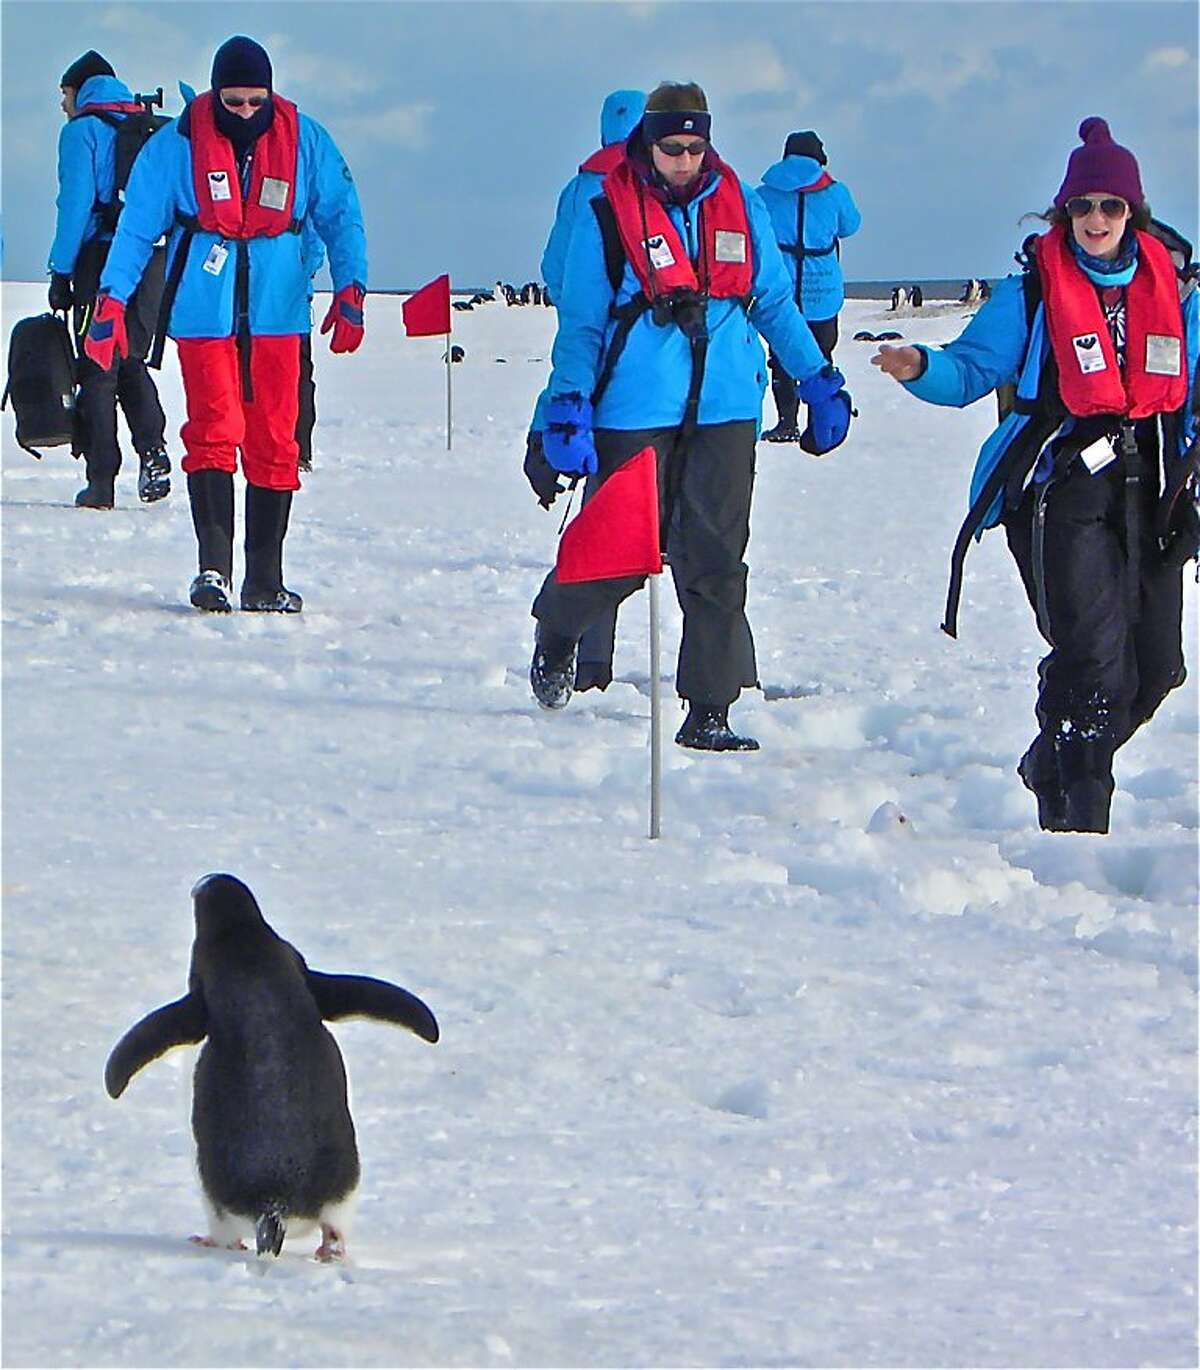 A penguin is unfazed by the visitors, who keep a modest but respectful distance.